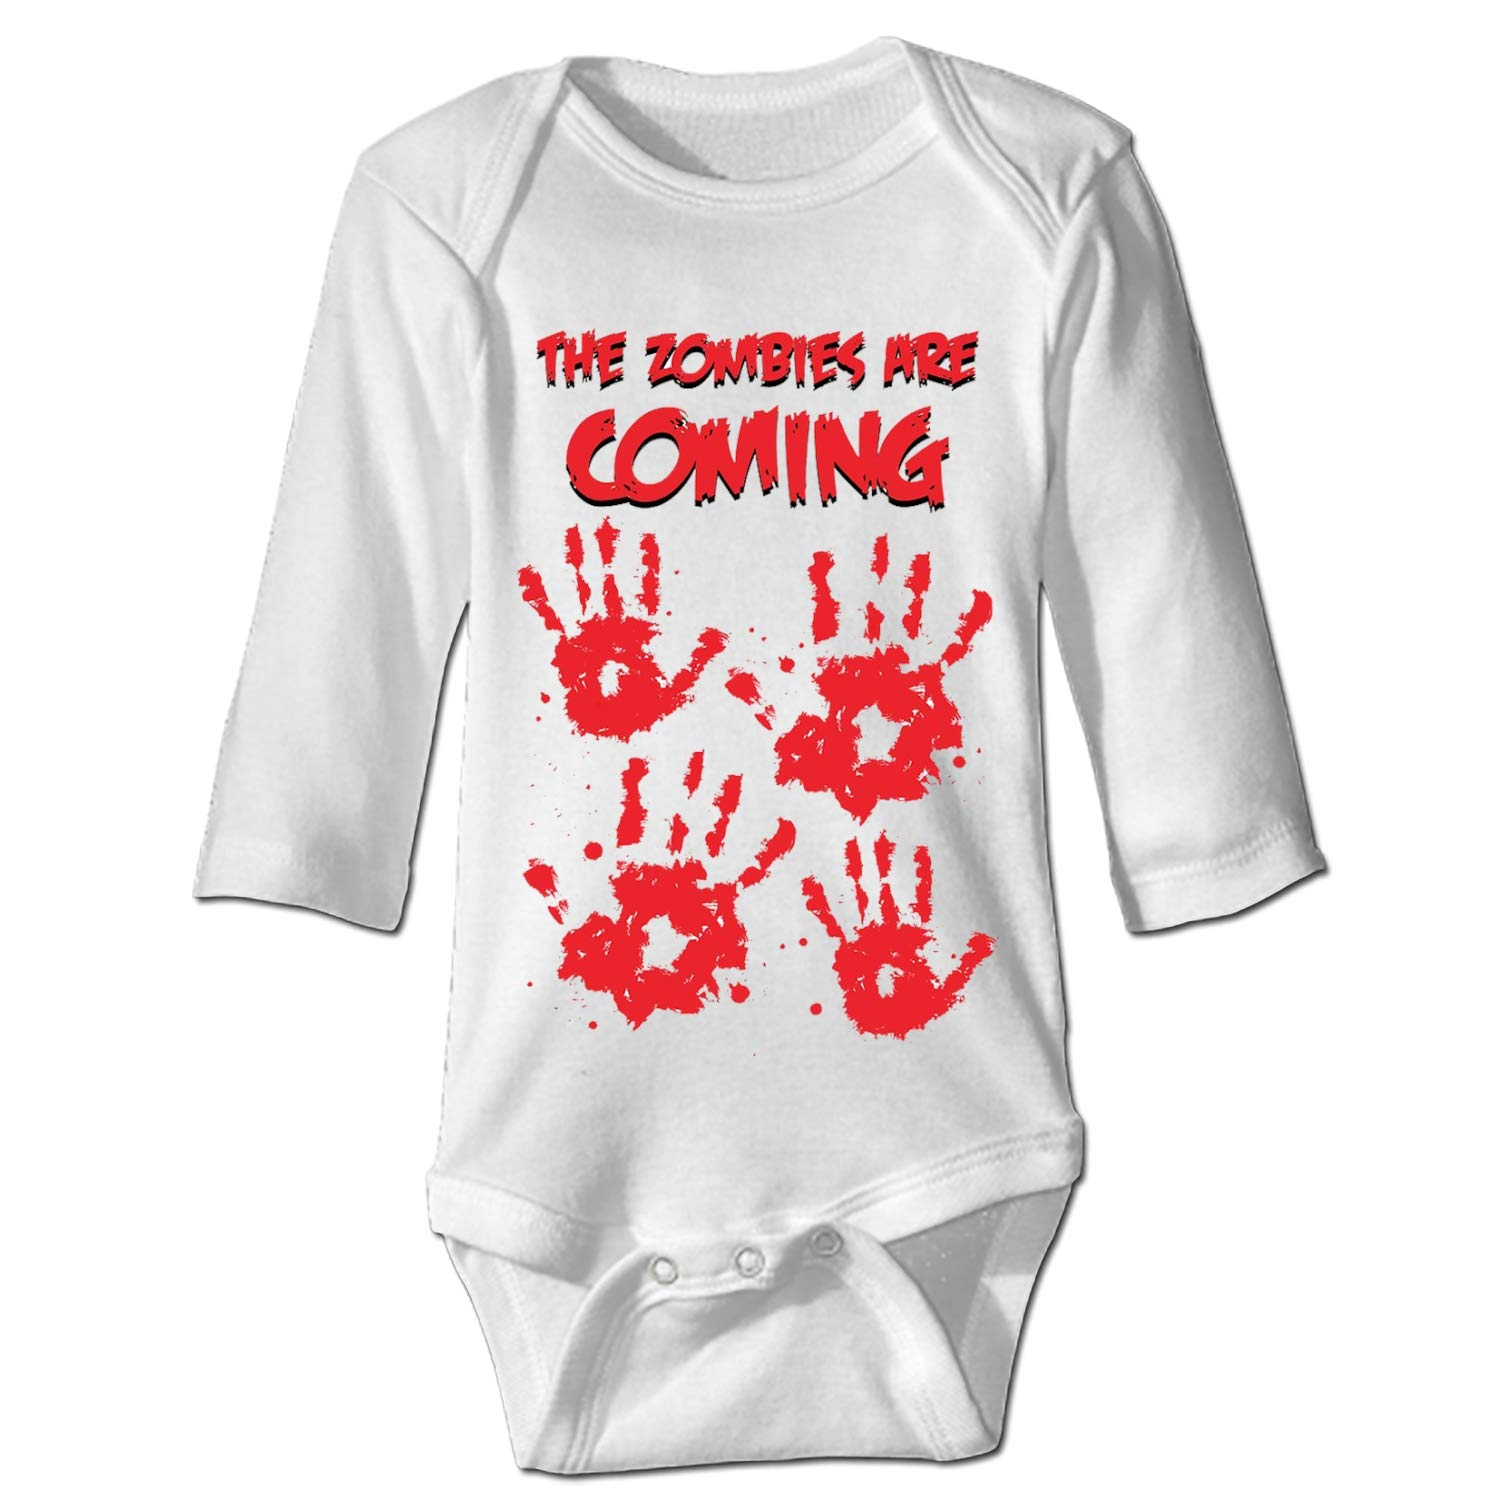 Baby Clothing Zombies Coming Funny Baby Bodysuit